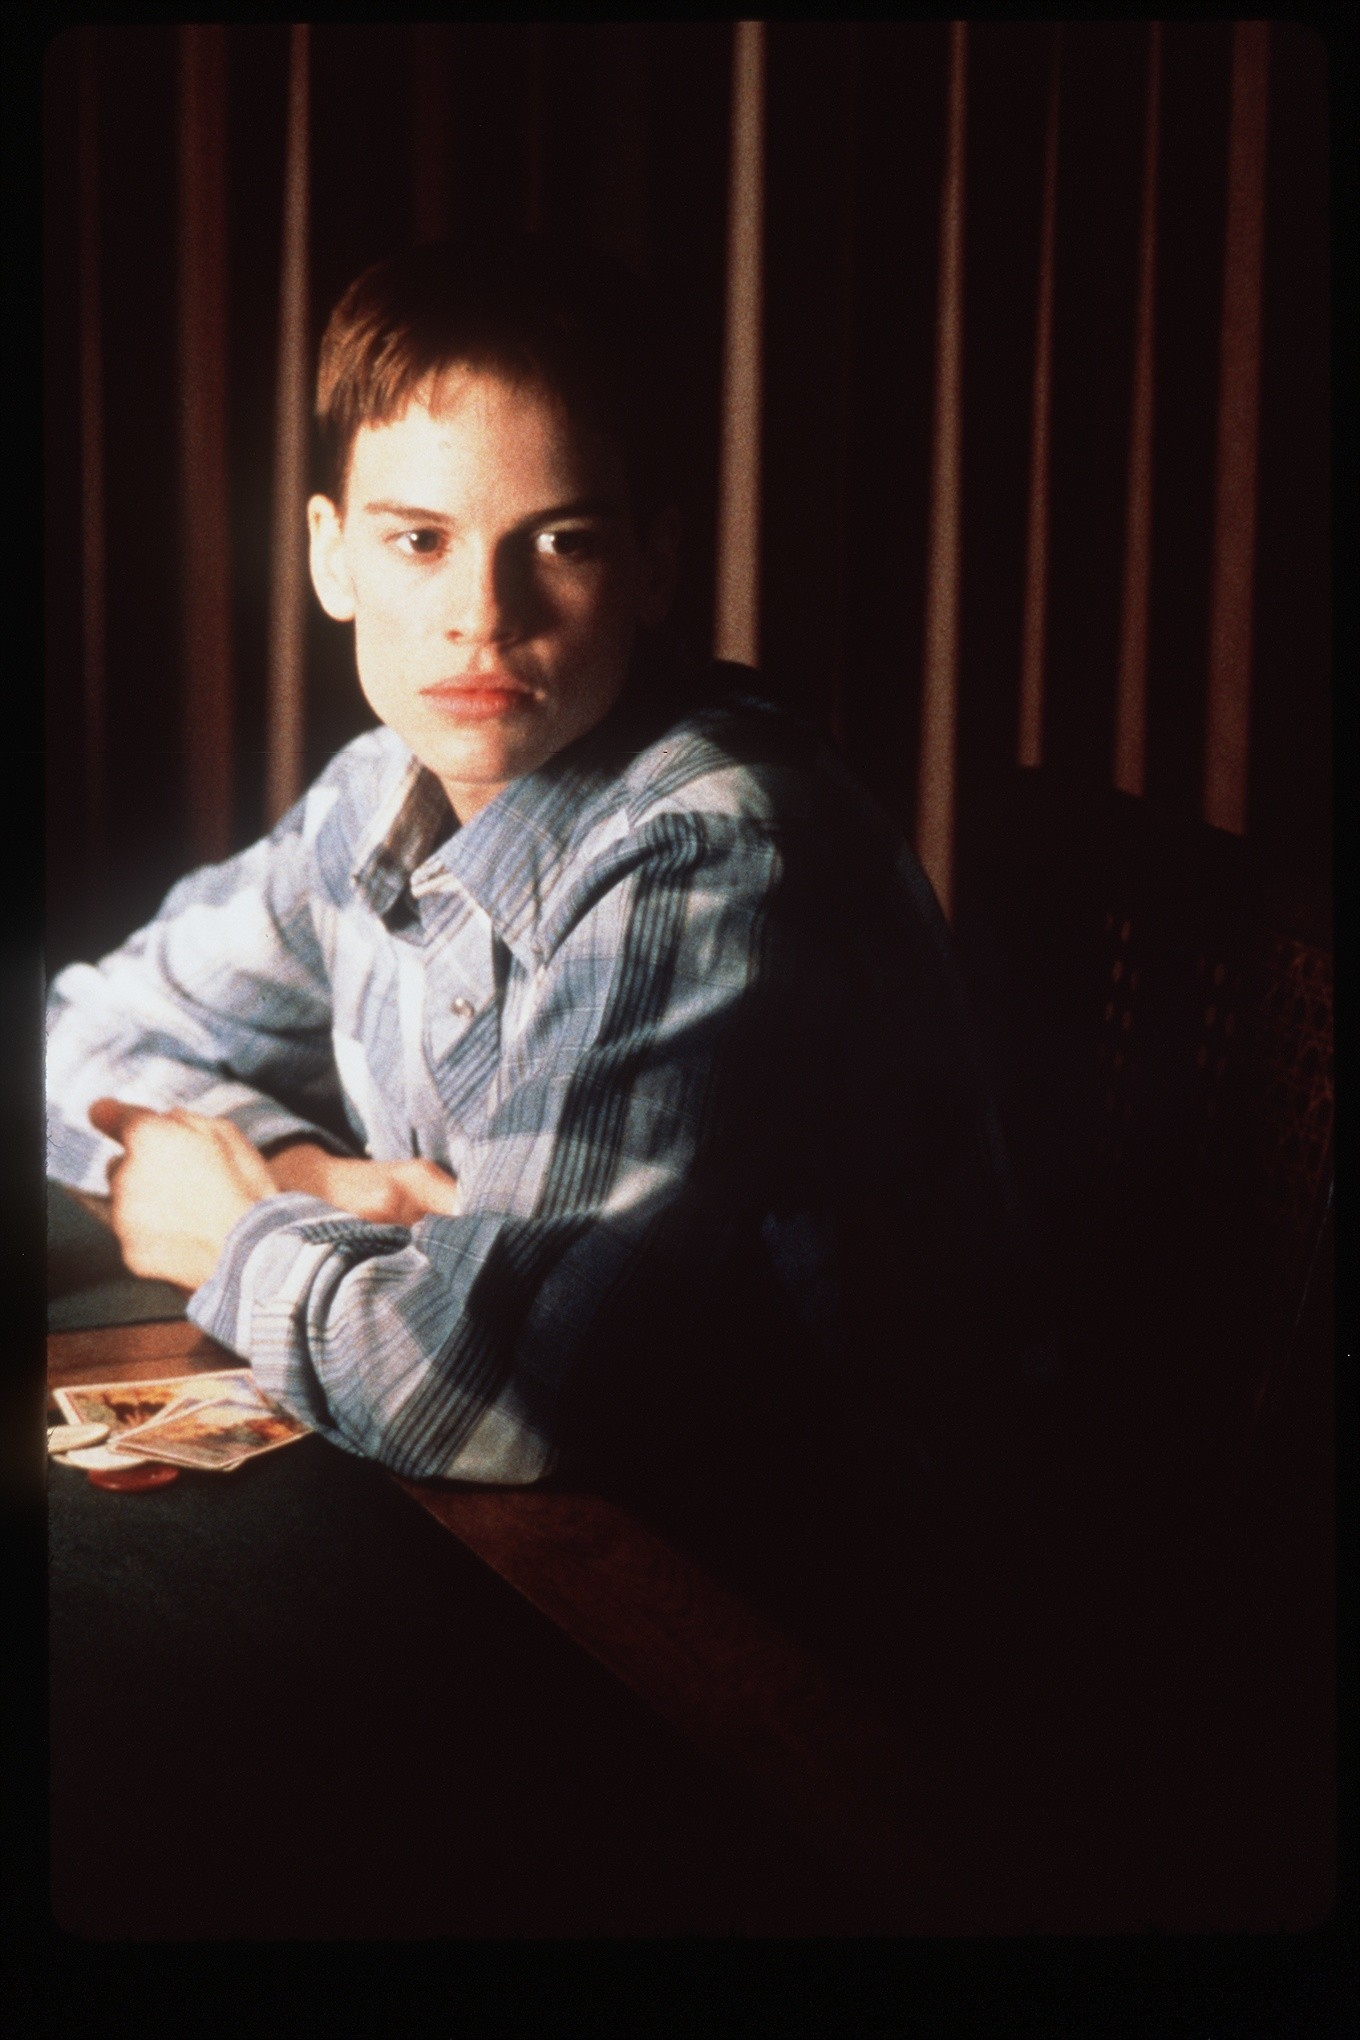 Hilary Swank played a transgender man in